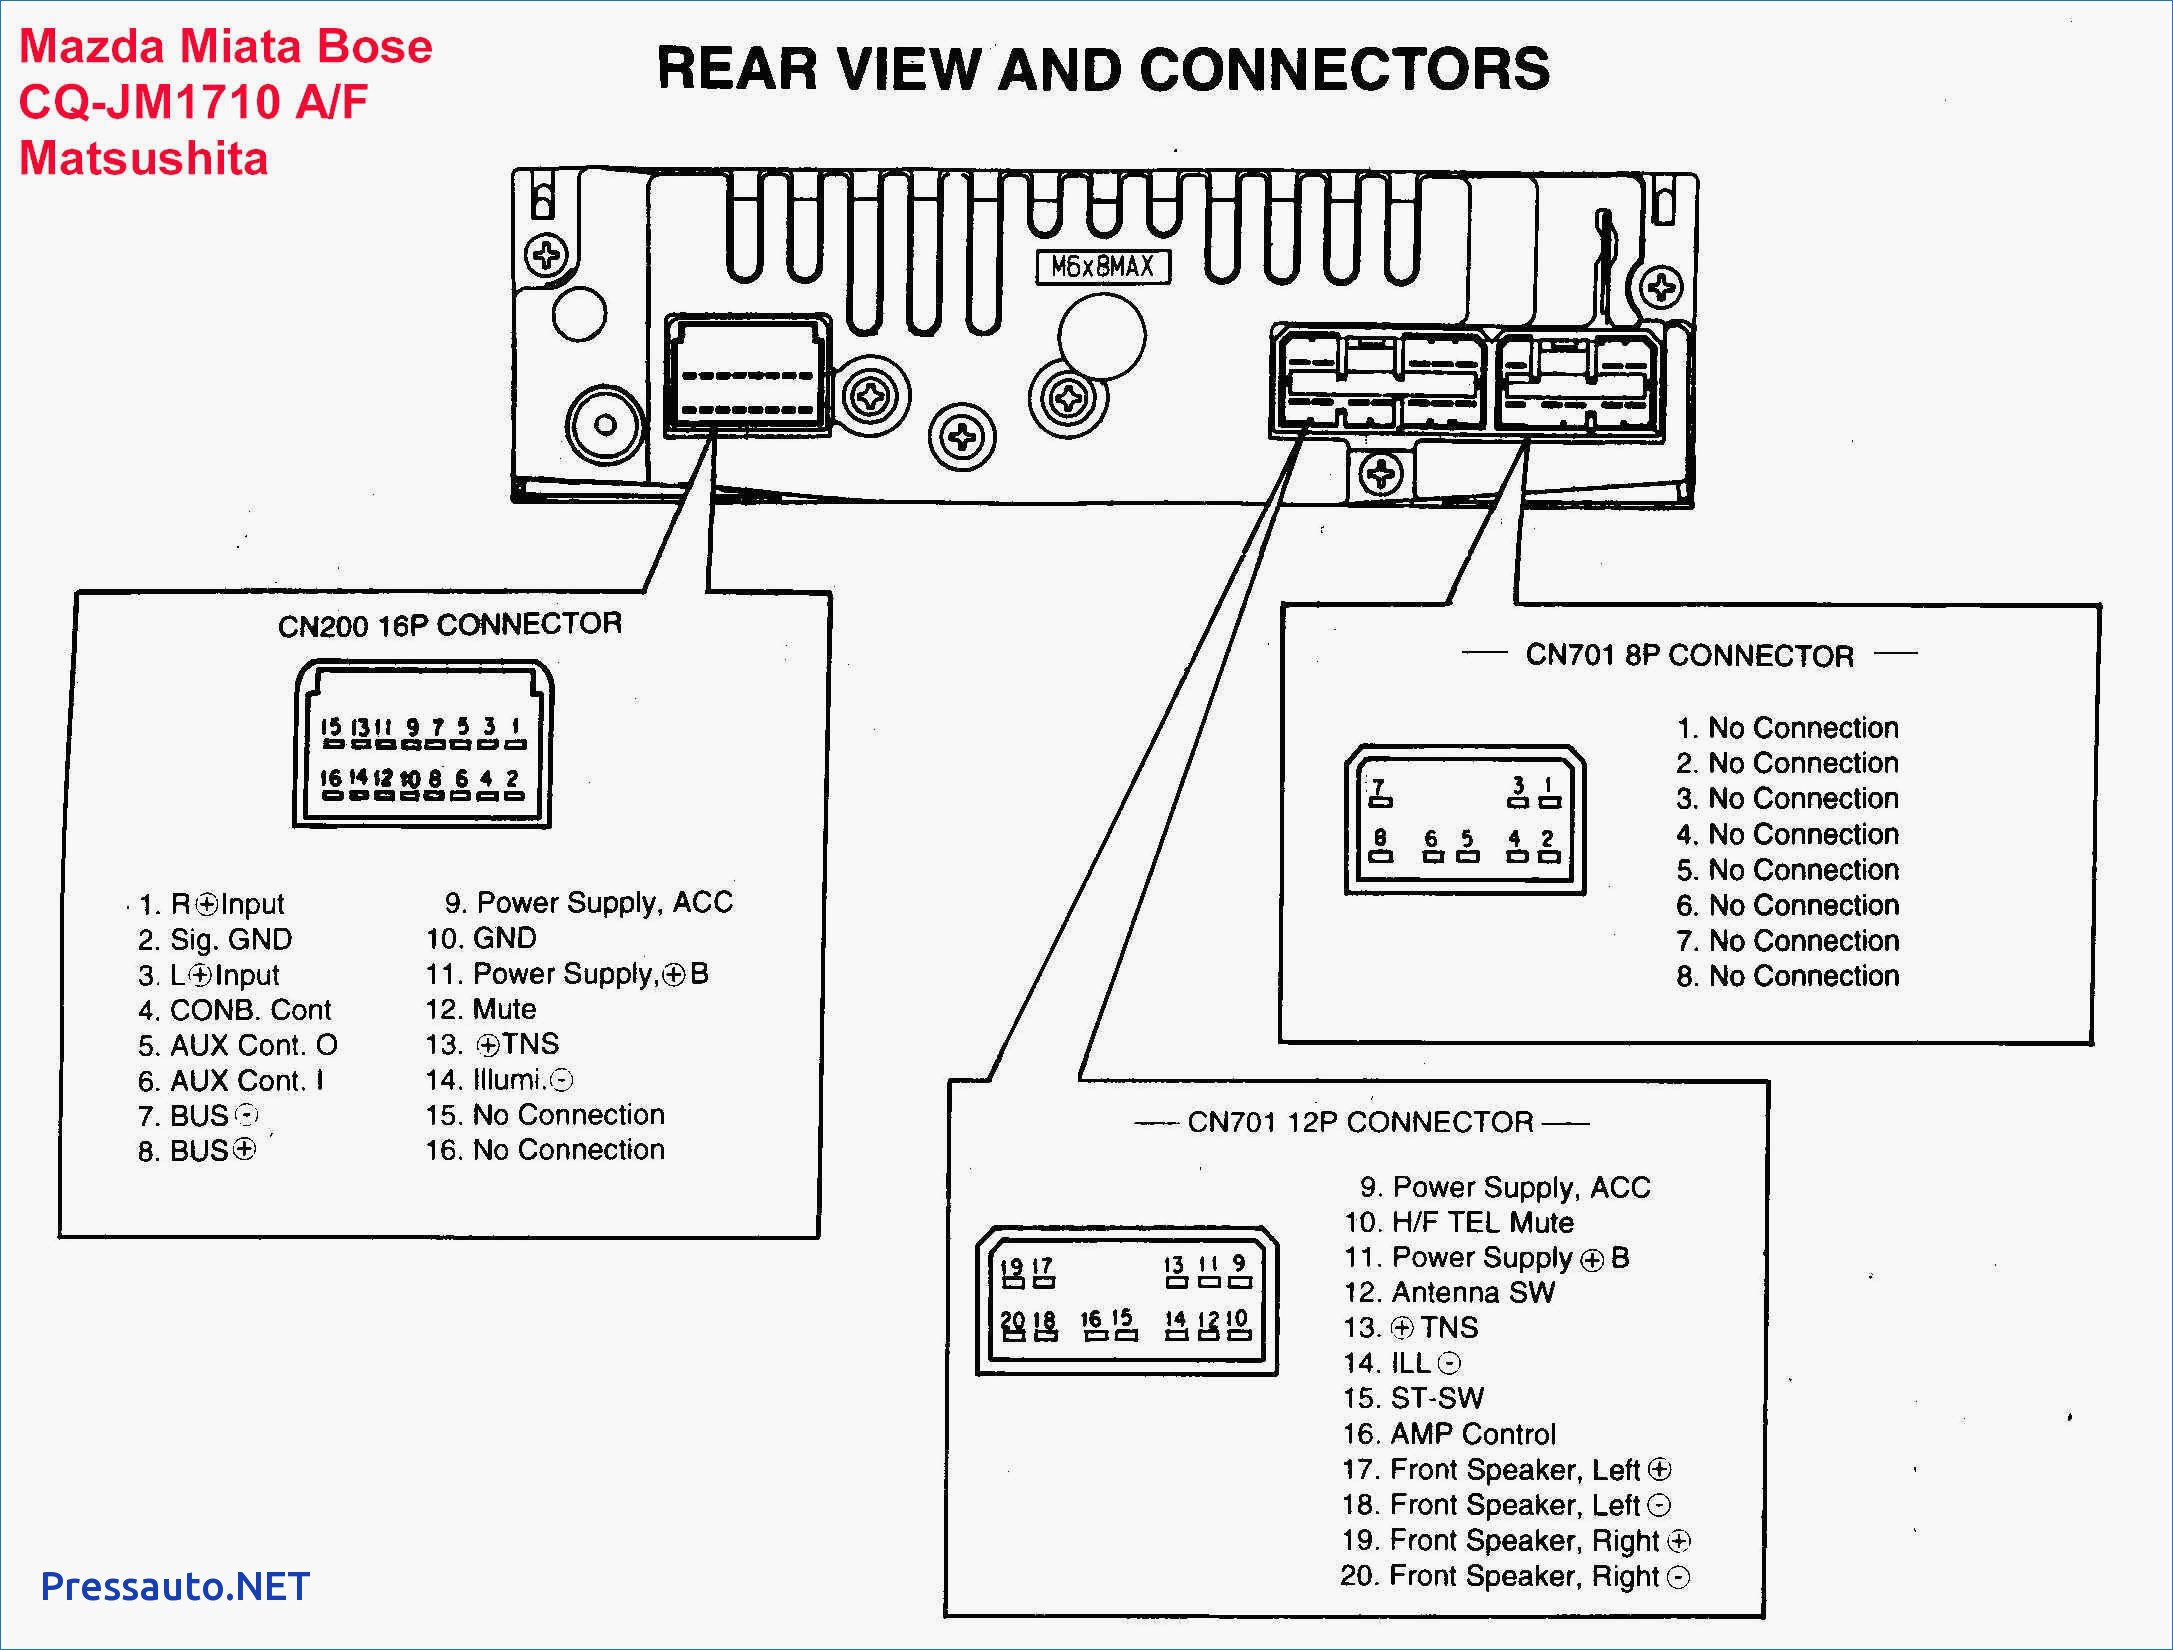 Factory Nissan Titan 2005 Wiring Diagram | Wiring Diagram - 2005 Nissan Titan Trailer Wiring Diagram